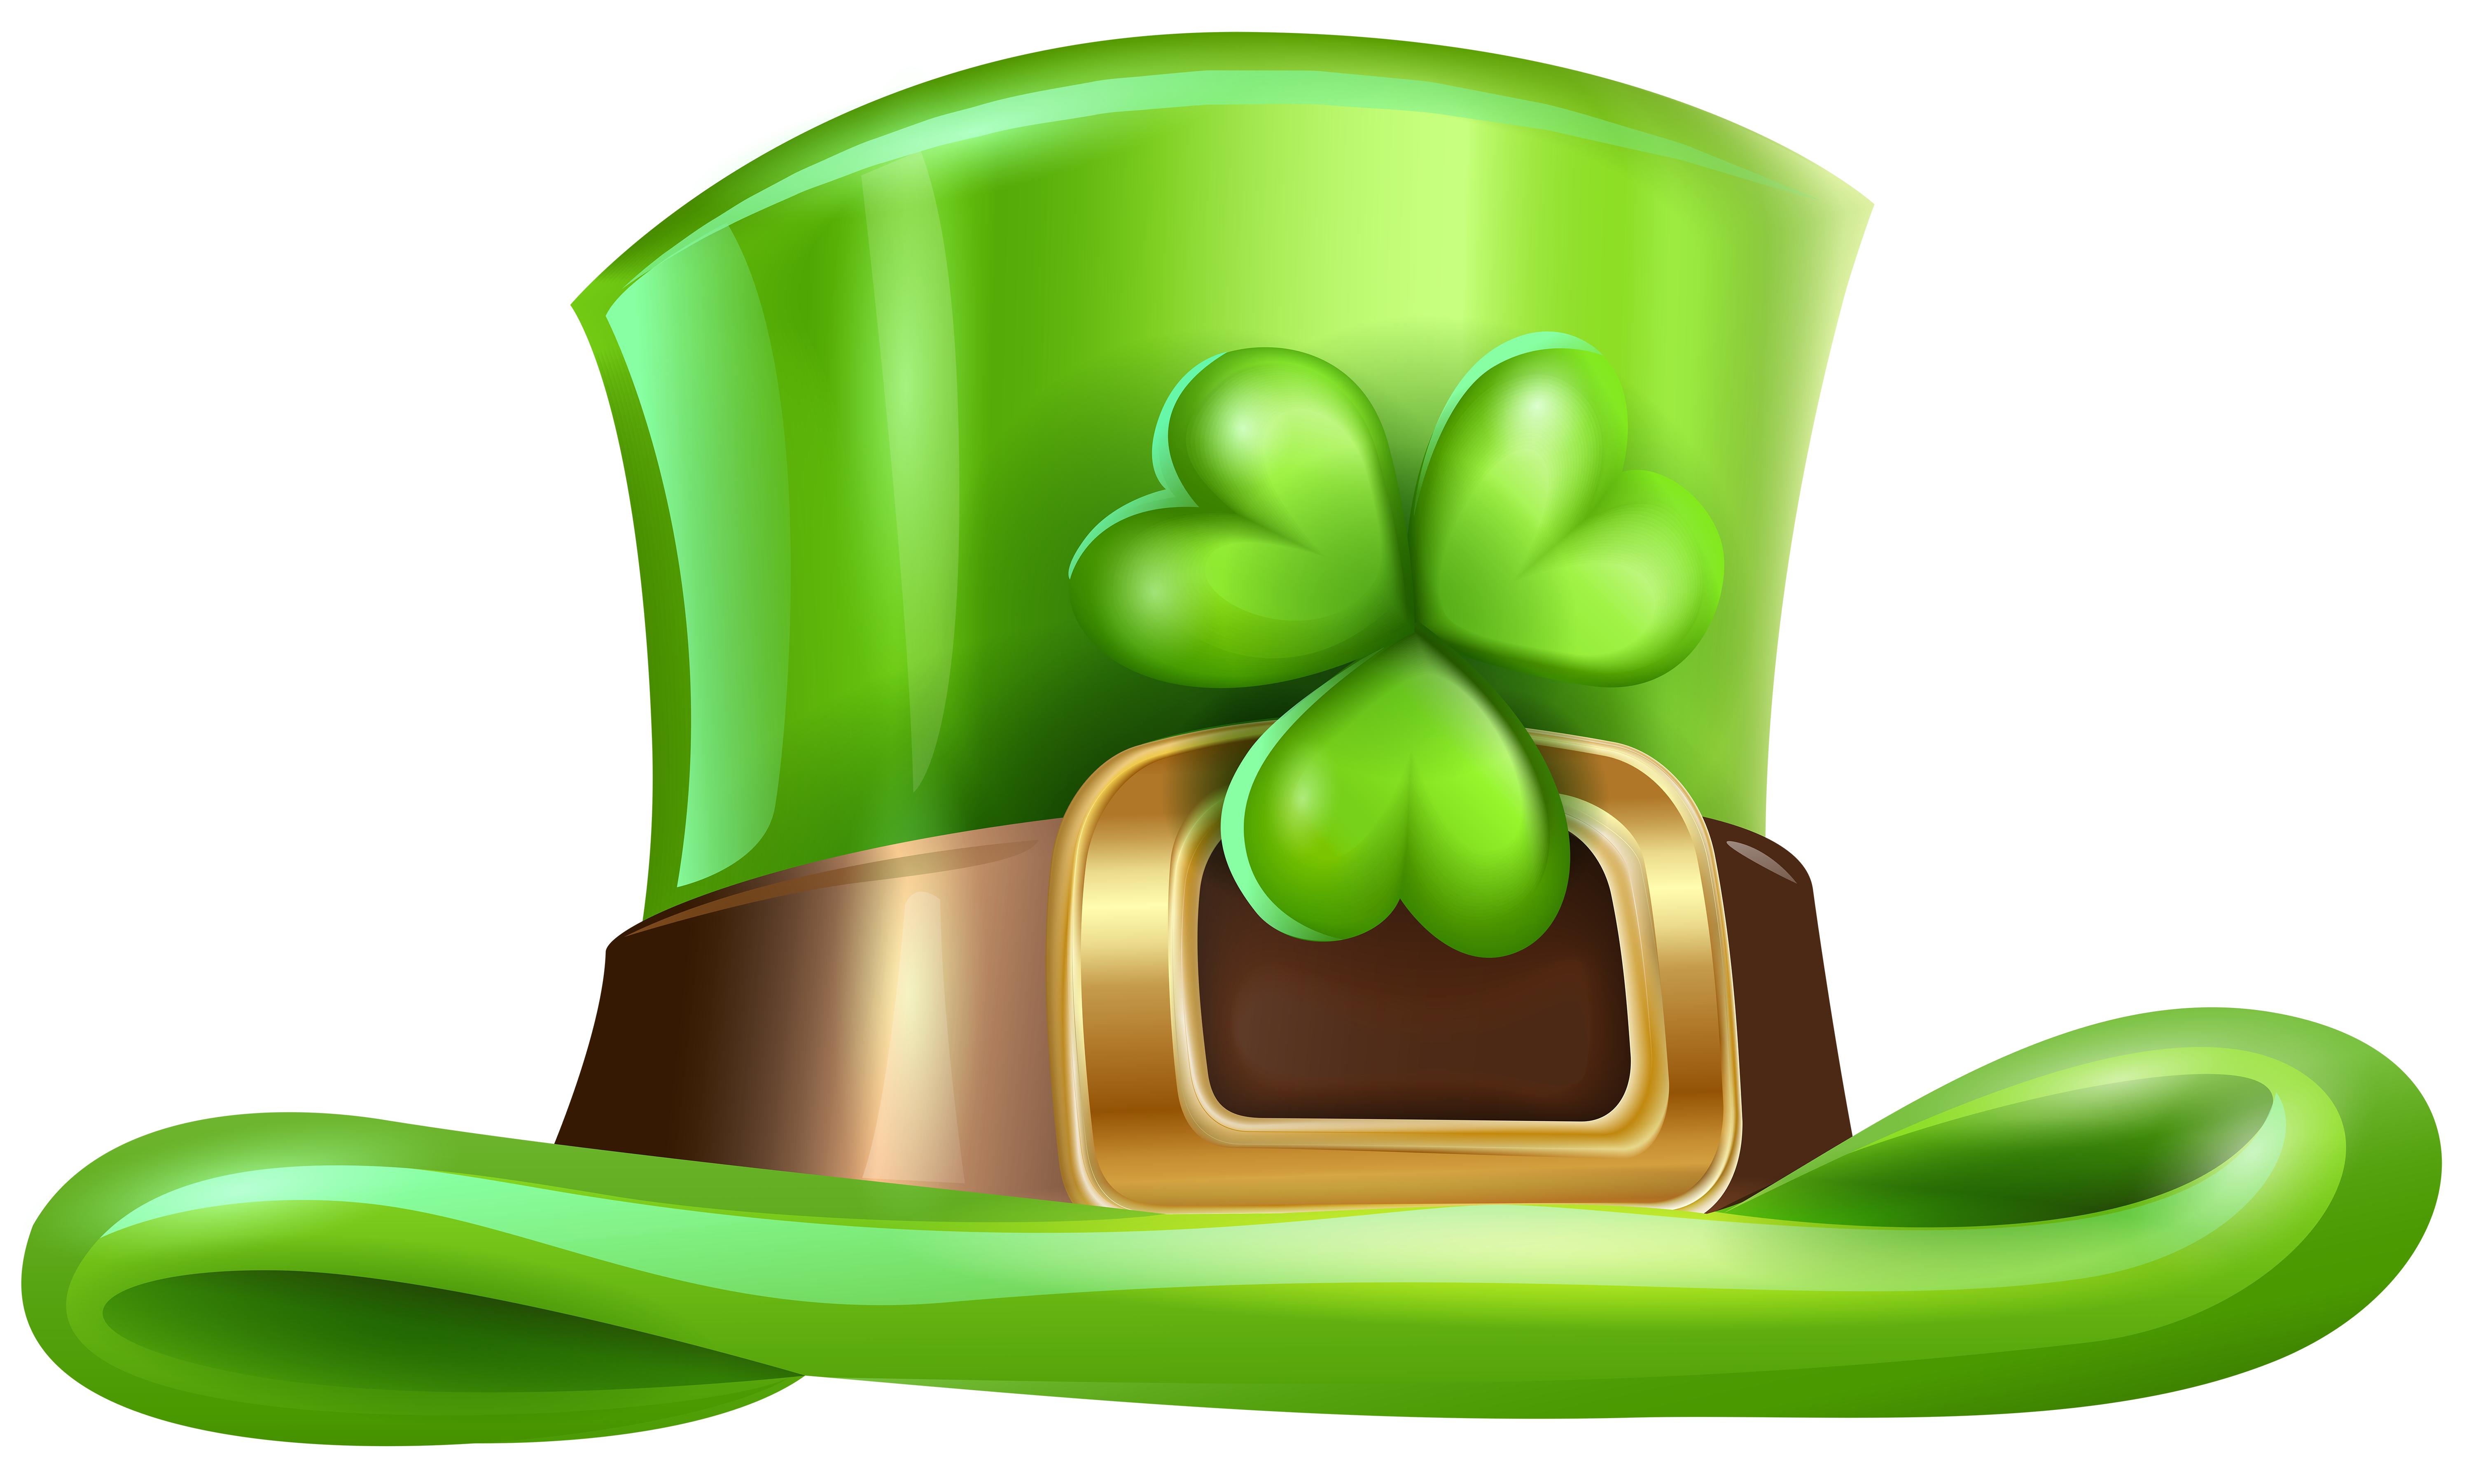 St Patricks Day Hat with Shamrock Transparent PNG Clip Art.